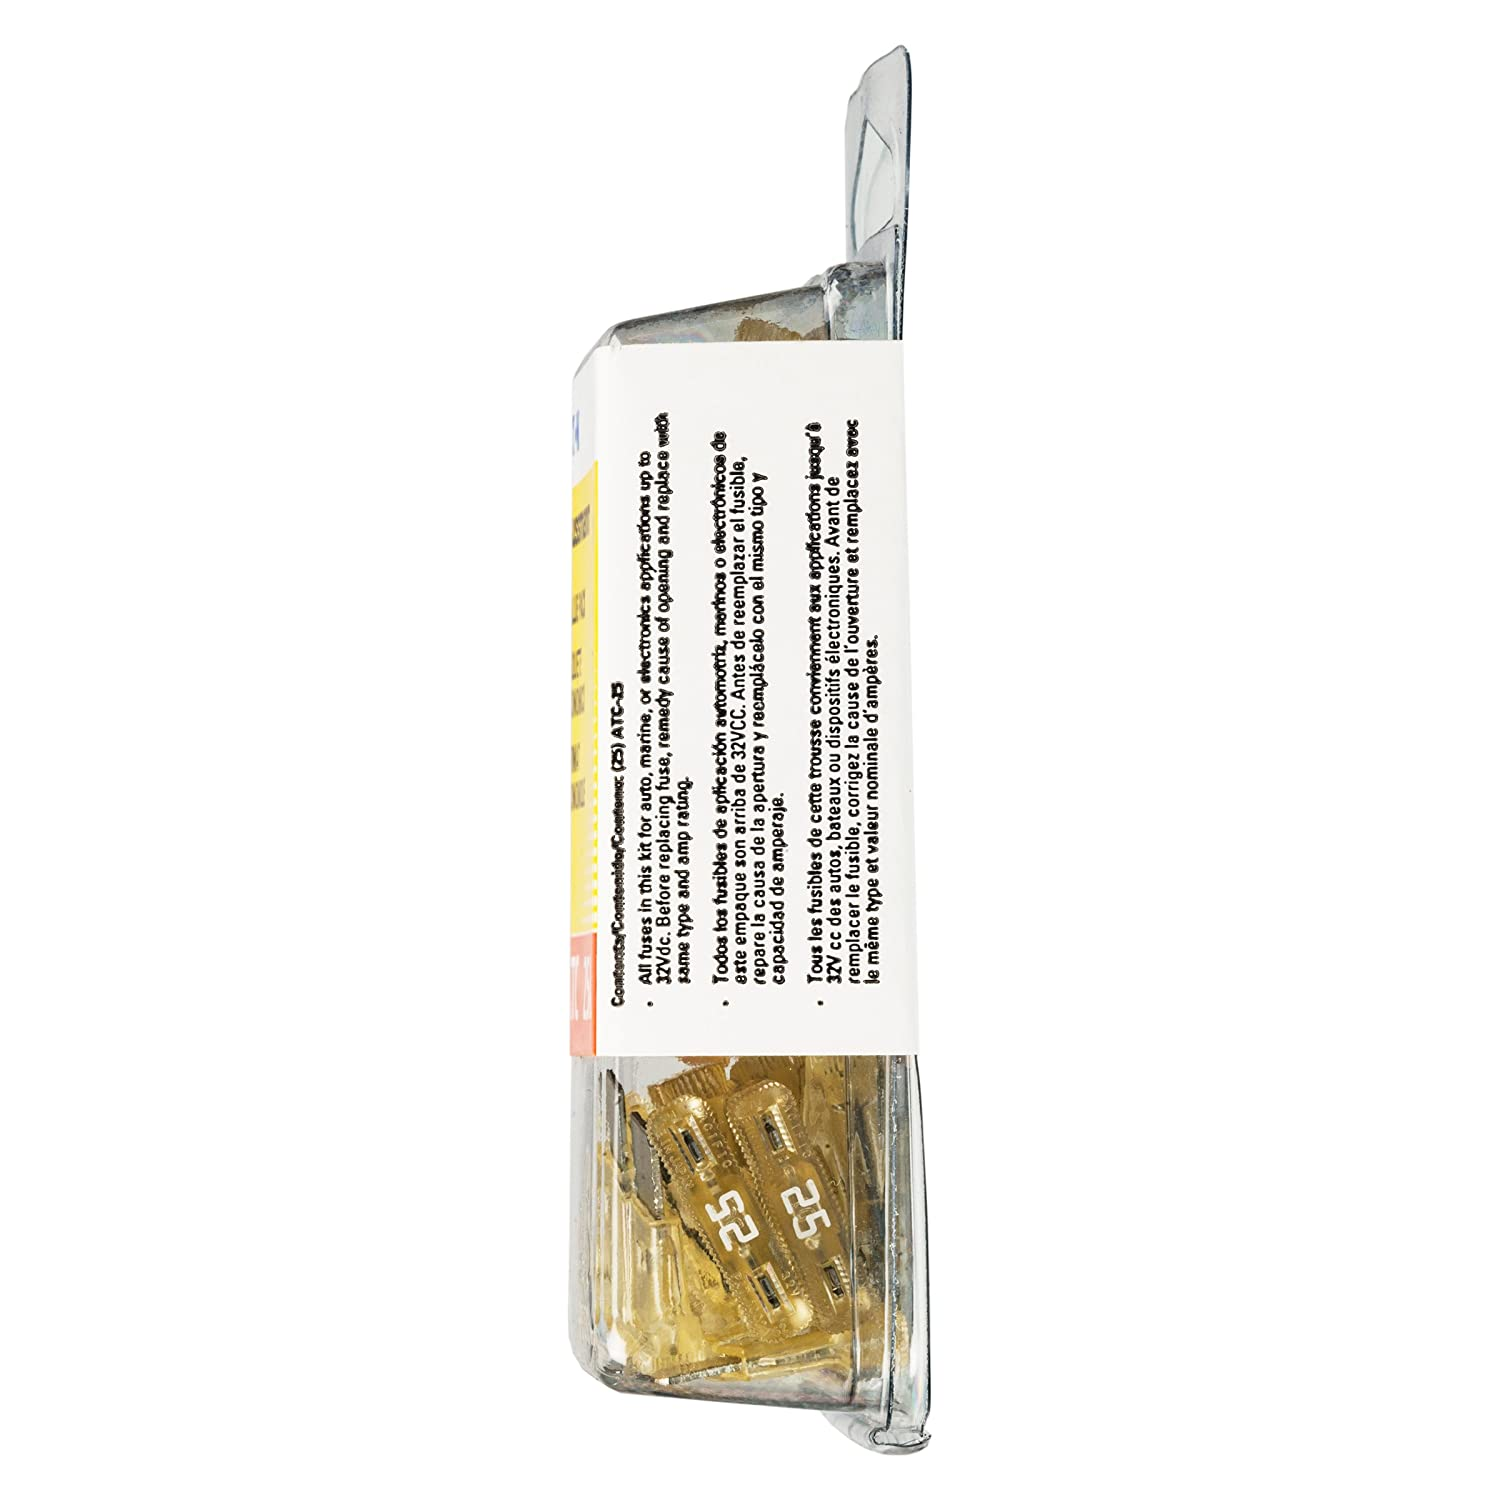 Bussmann Clear 25 Amp 32V Fast Acting ATC Blade Fuse, VP//ATC-25-RP Pack of 25